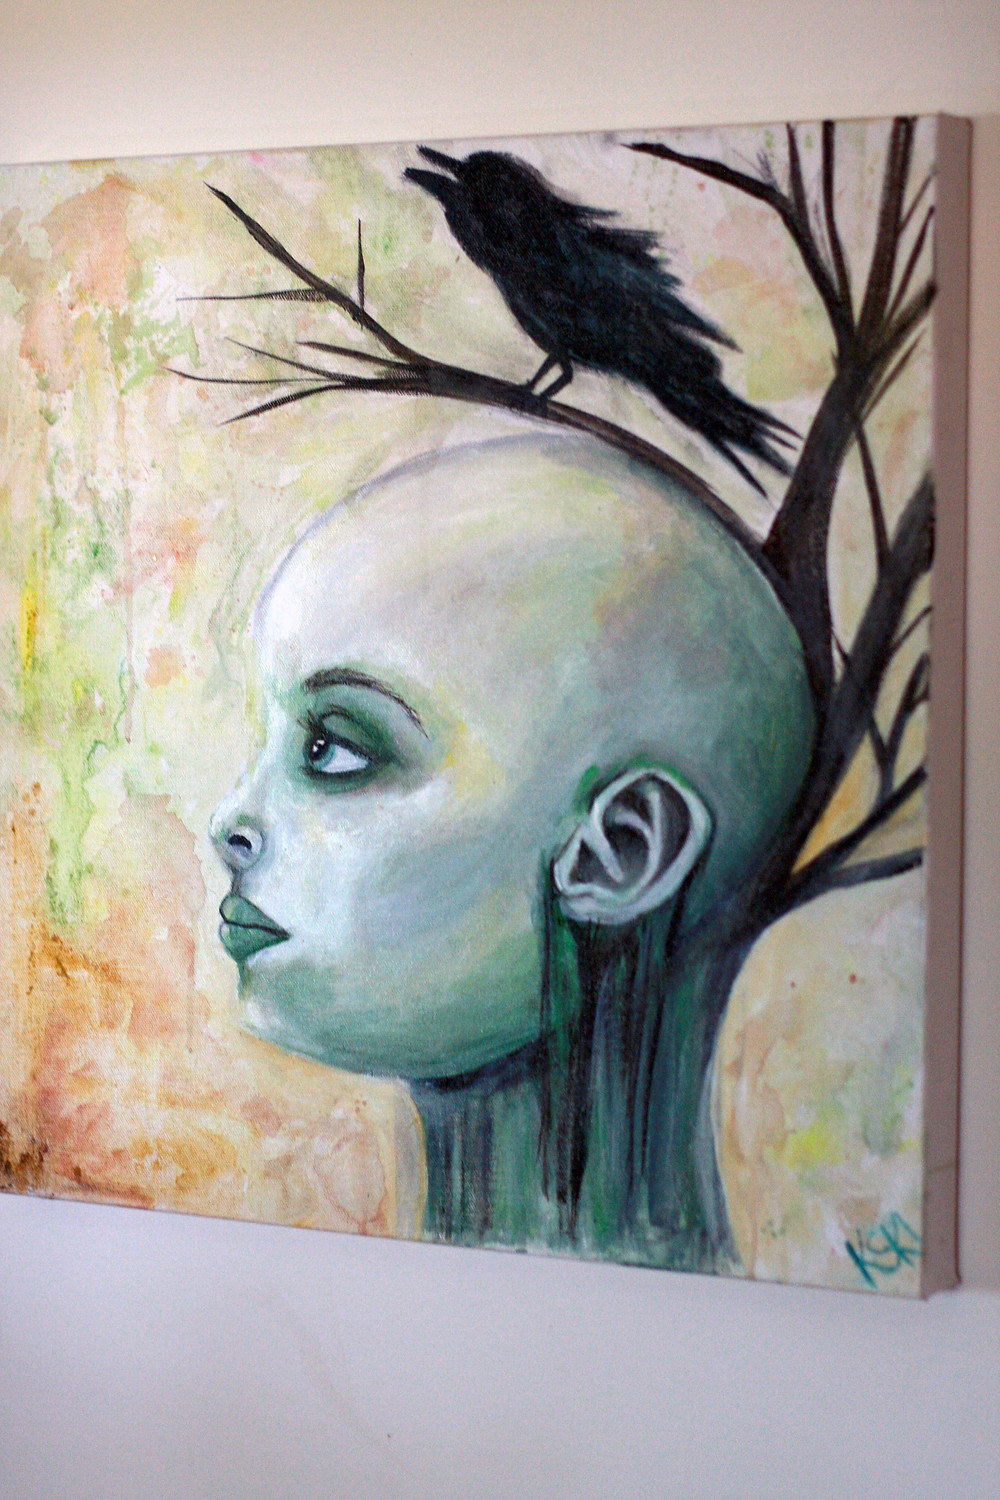 Branched Thoughts, original painting by Krissy Whiski